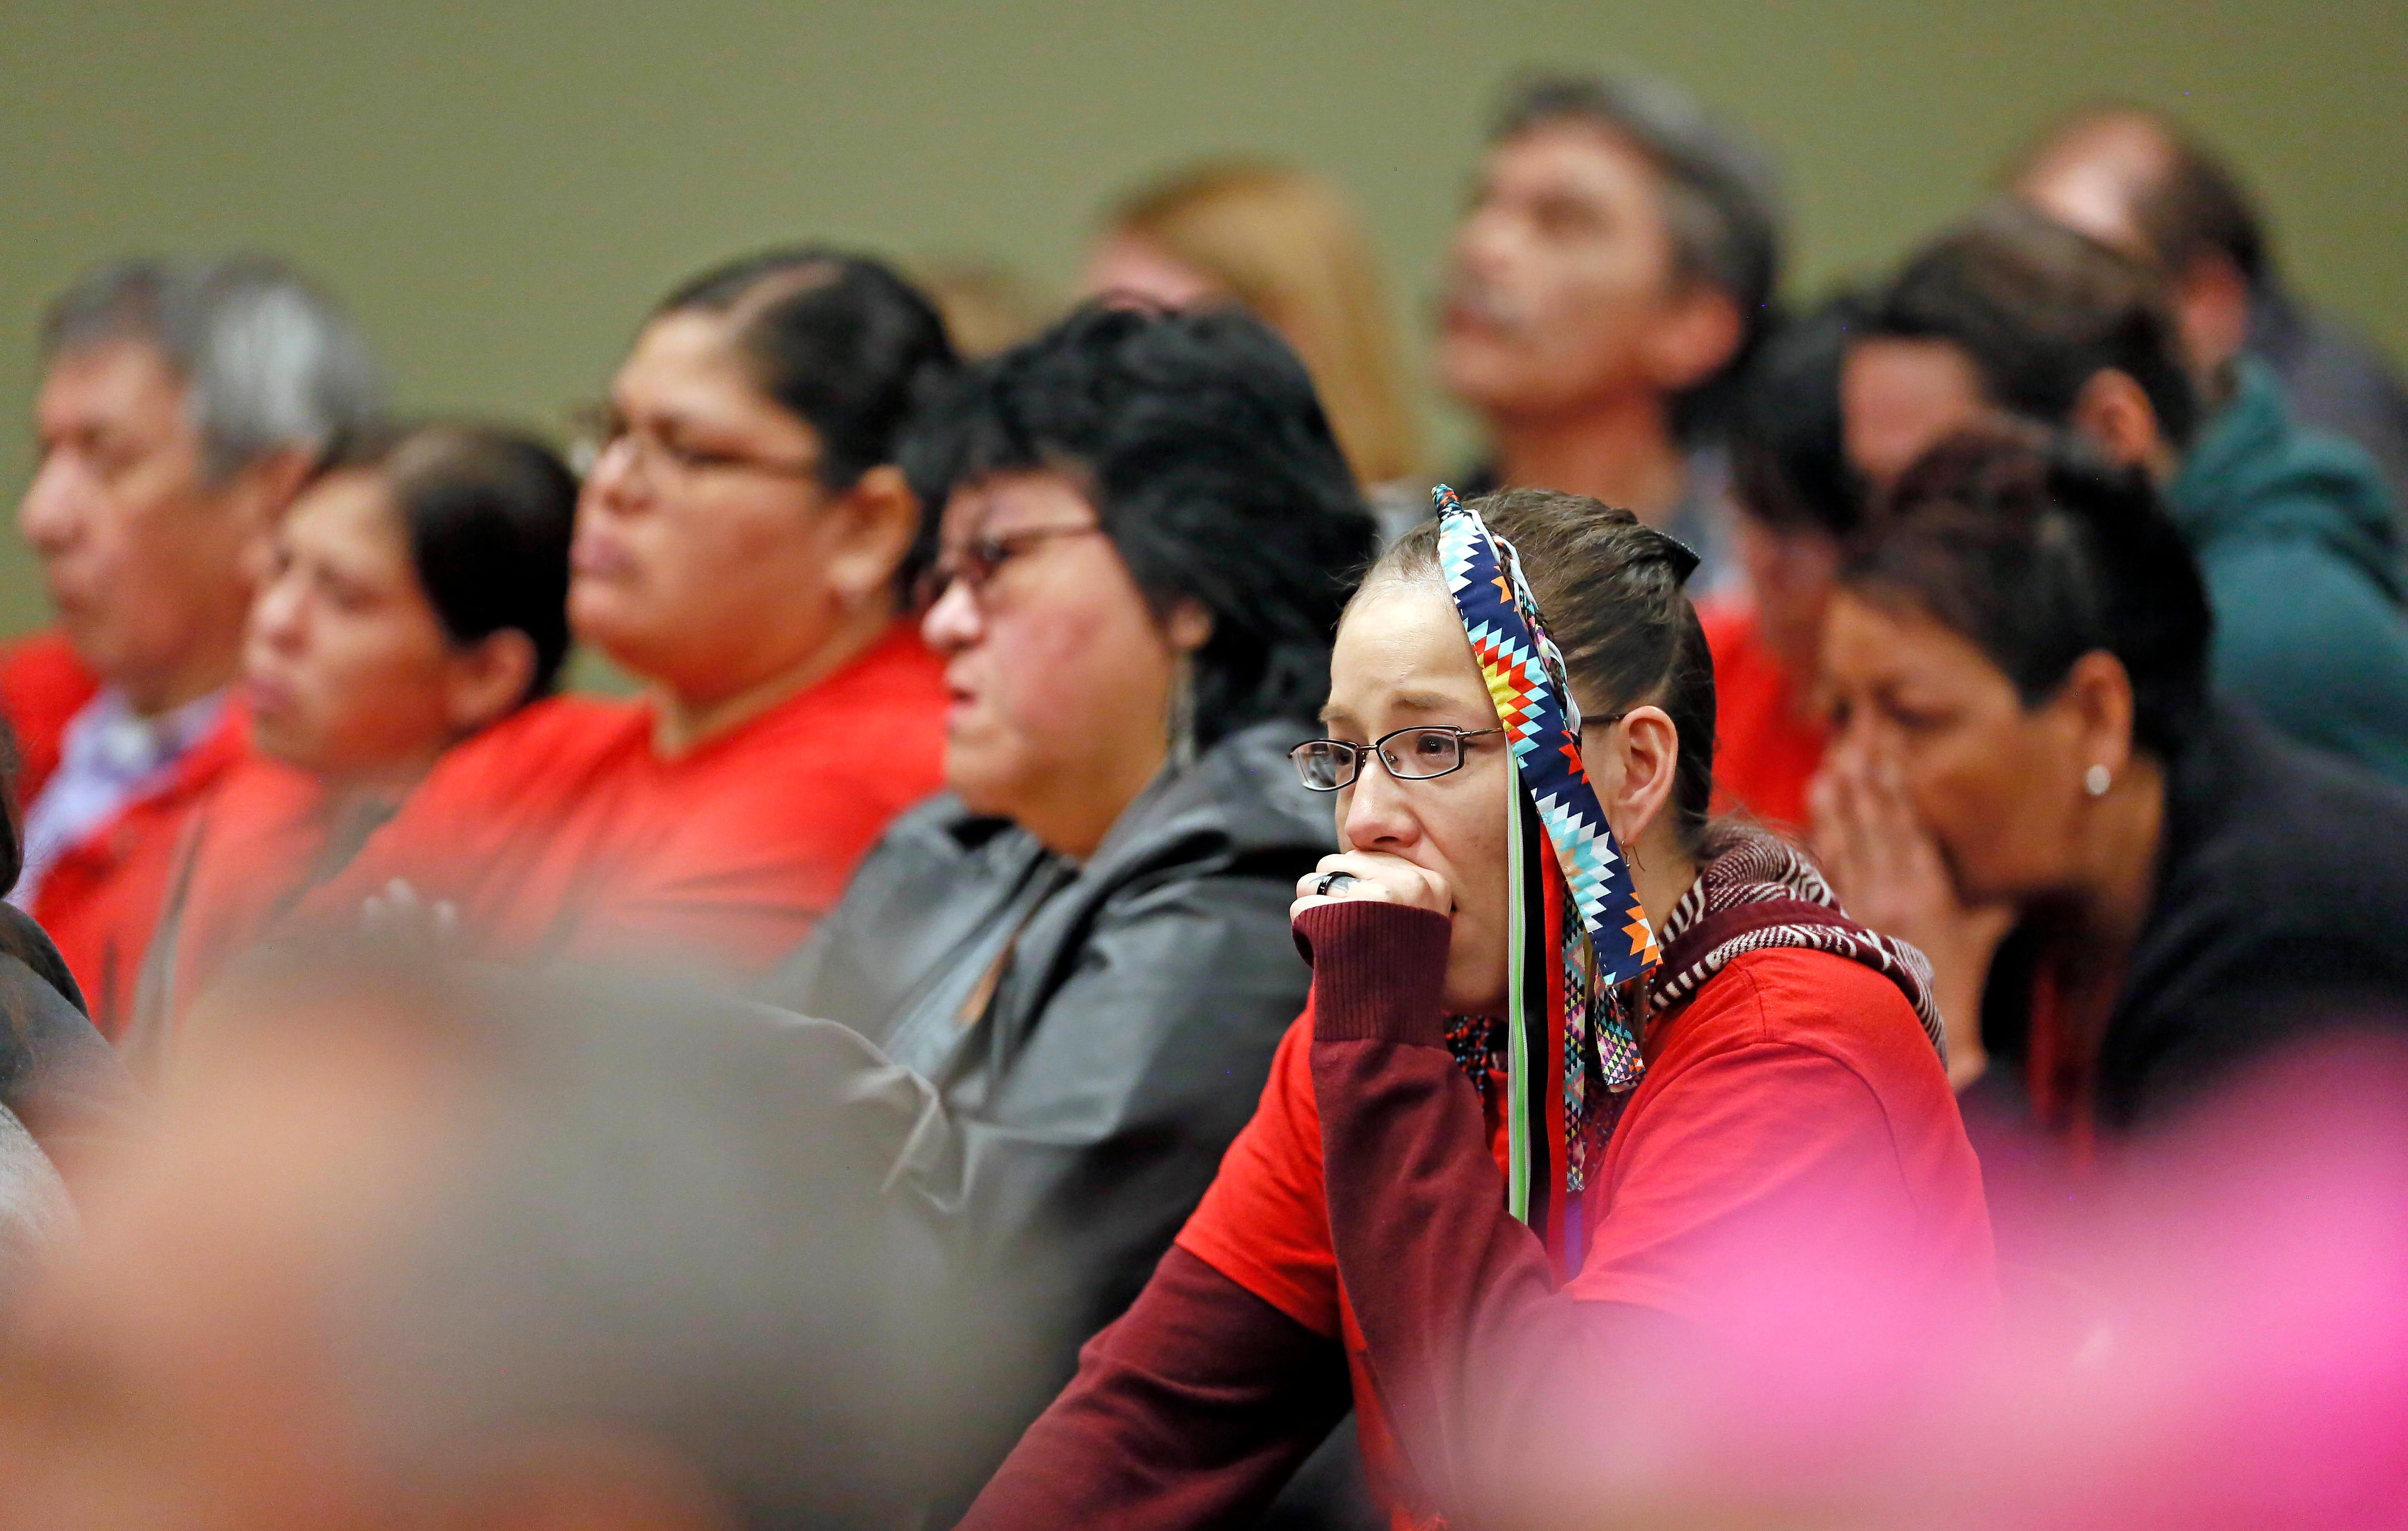 Family members listen to the sentencing of Brooke Crews for the murder of Savanna LaFontaine-Greywind at the Cass County District Court in Fargo, N.D., on Friday, Feb. 2, 2018. (David Samson /The Forum via AP  **NOT AN AP PHOTO MEMBER**)